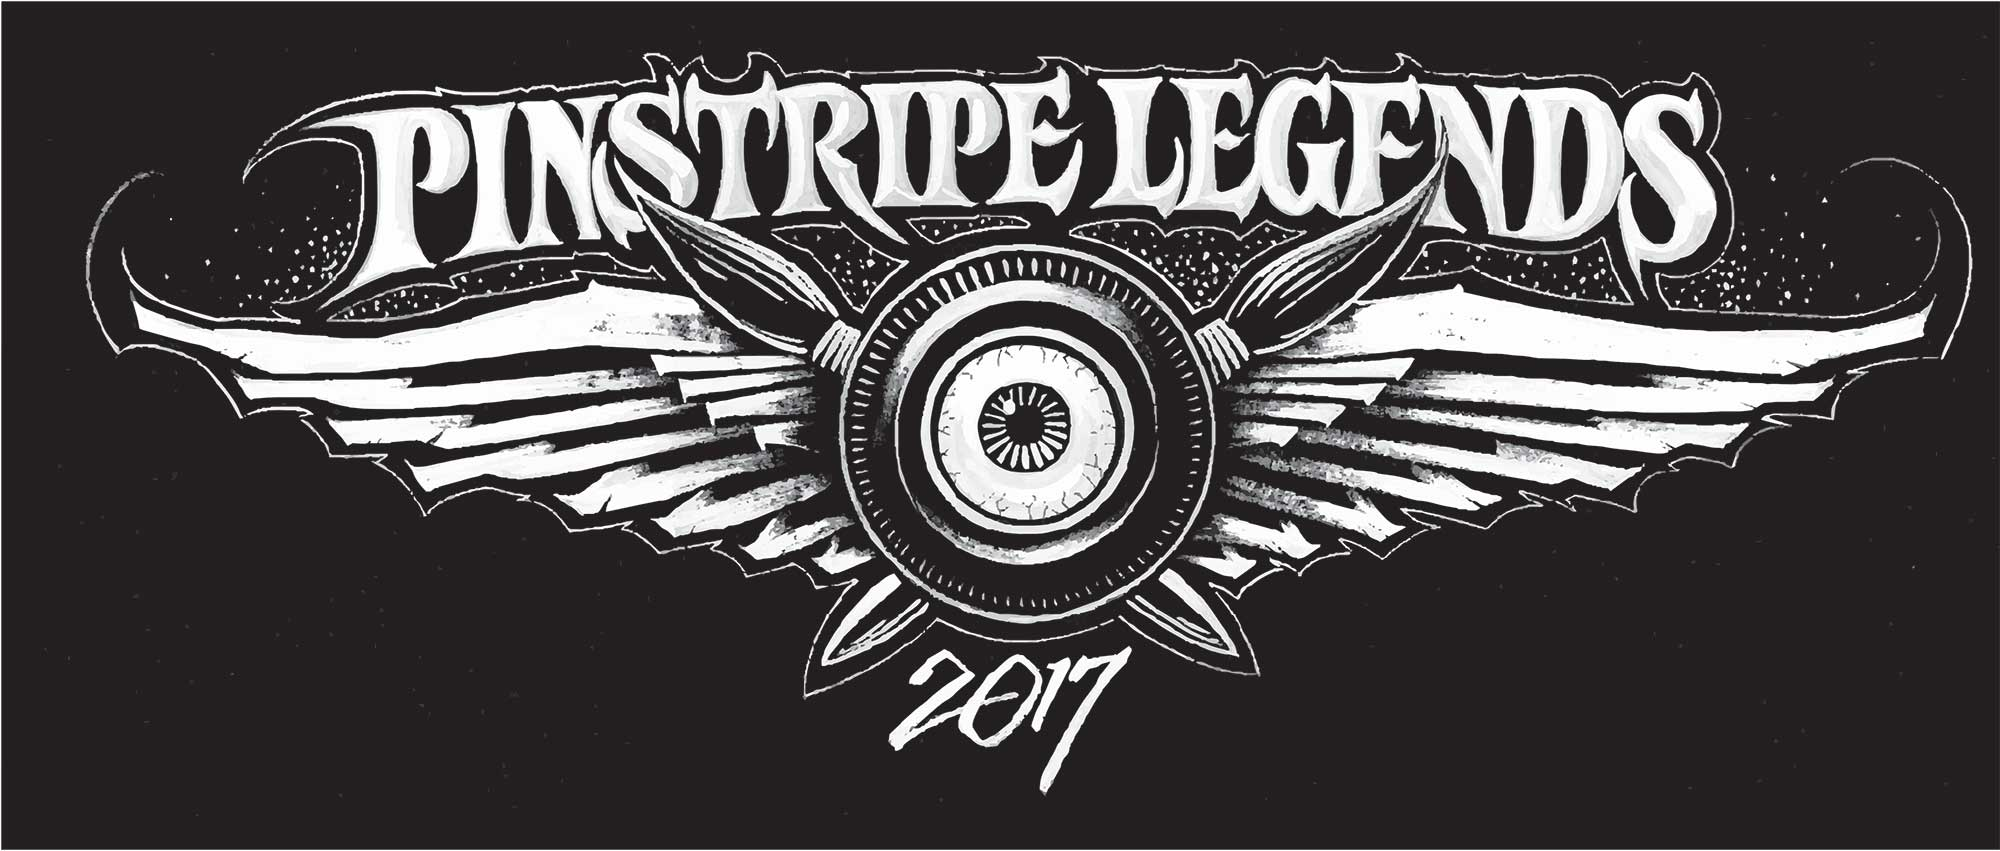 2017 Pinstripe Legends Logo Art